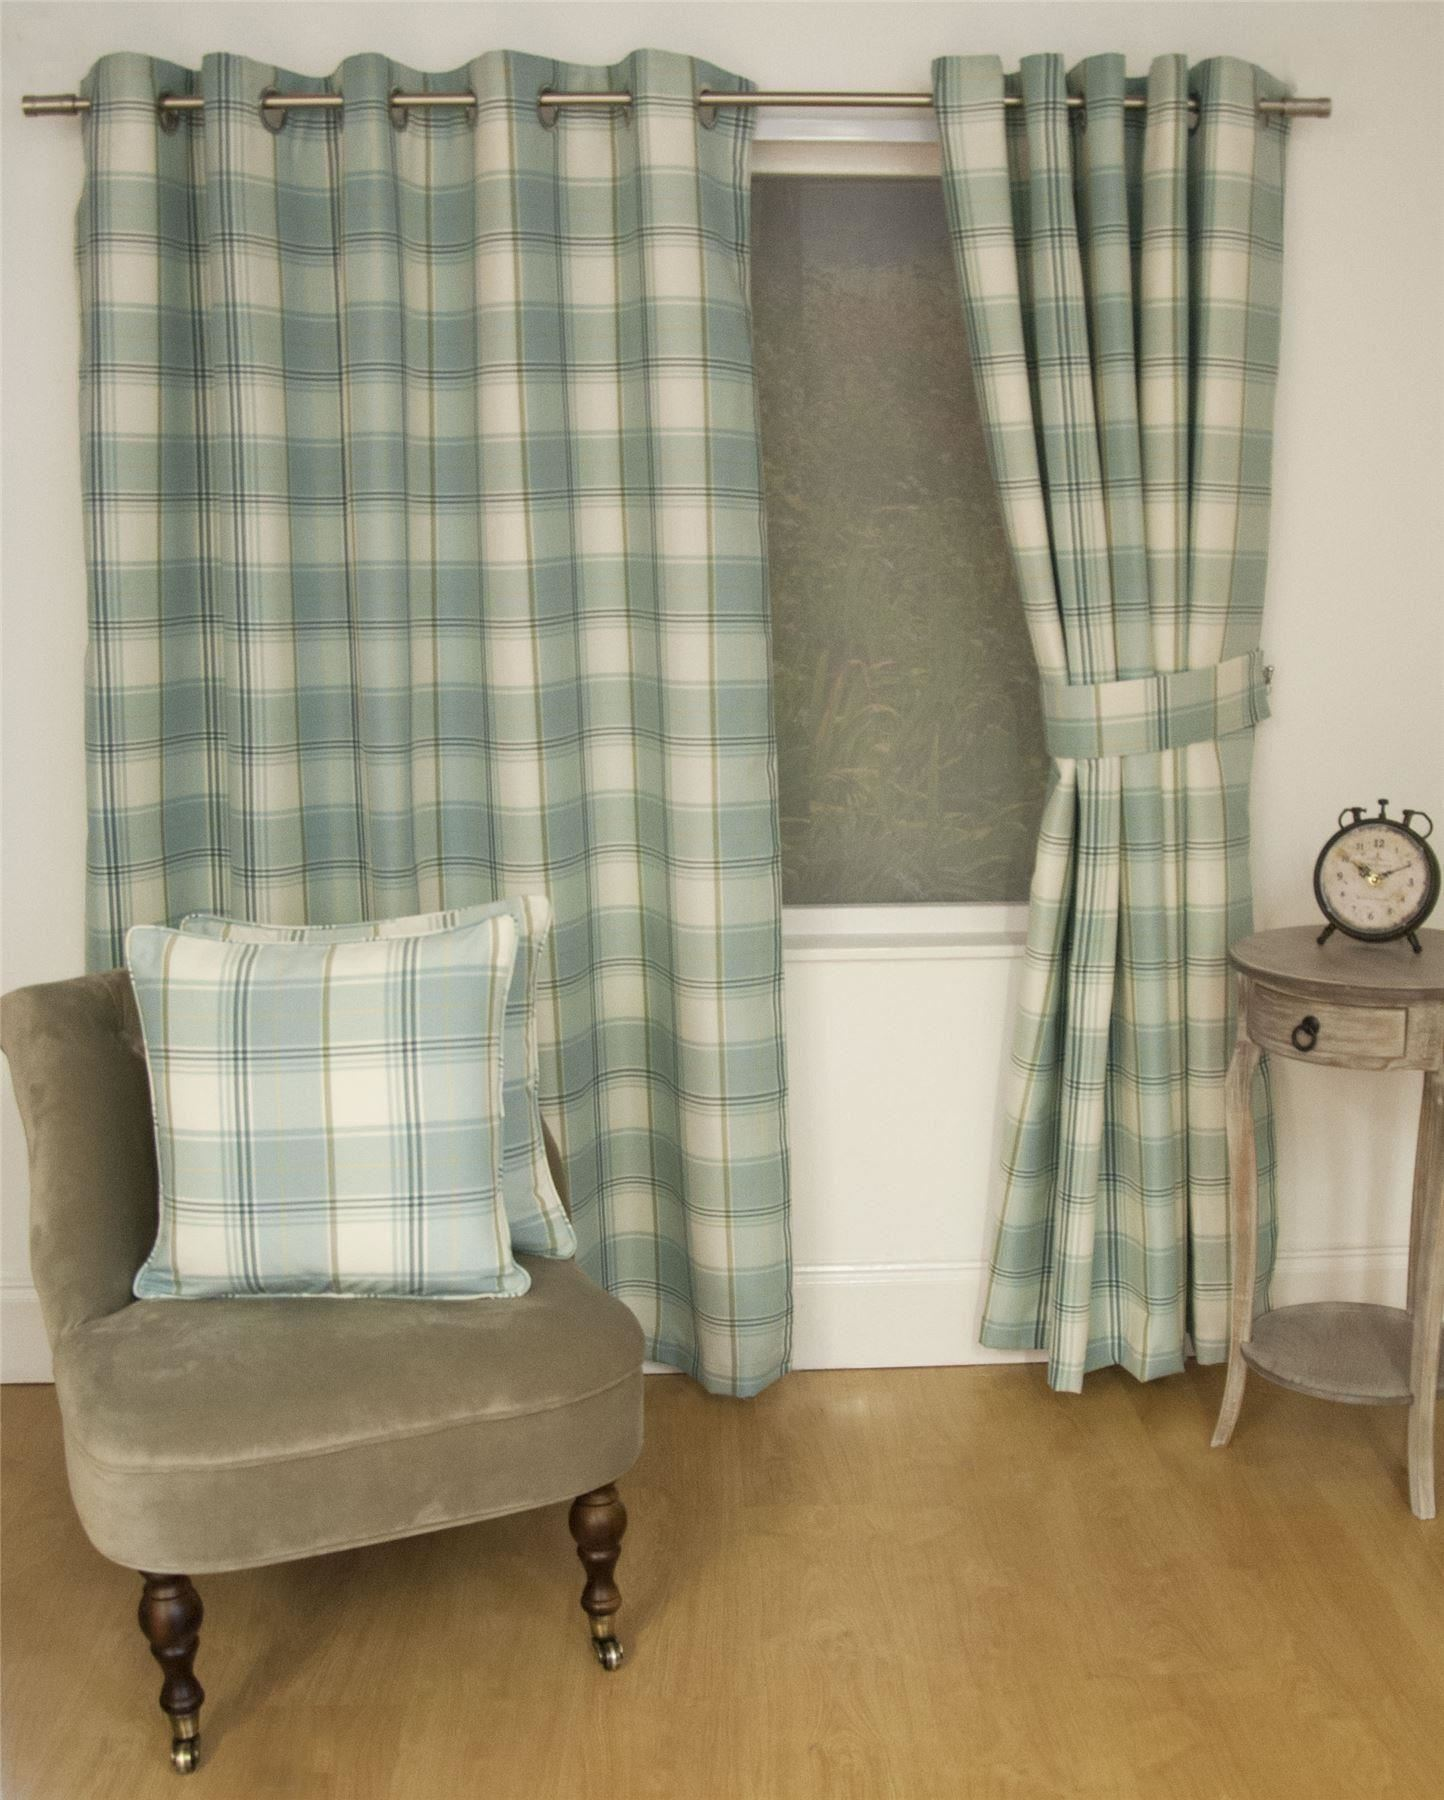 JACQUARD TARTAN CHECK DUCK EGG BLUE LINED RING TOP CURTAINS DRAPES *9 SIZES*